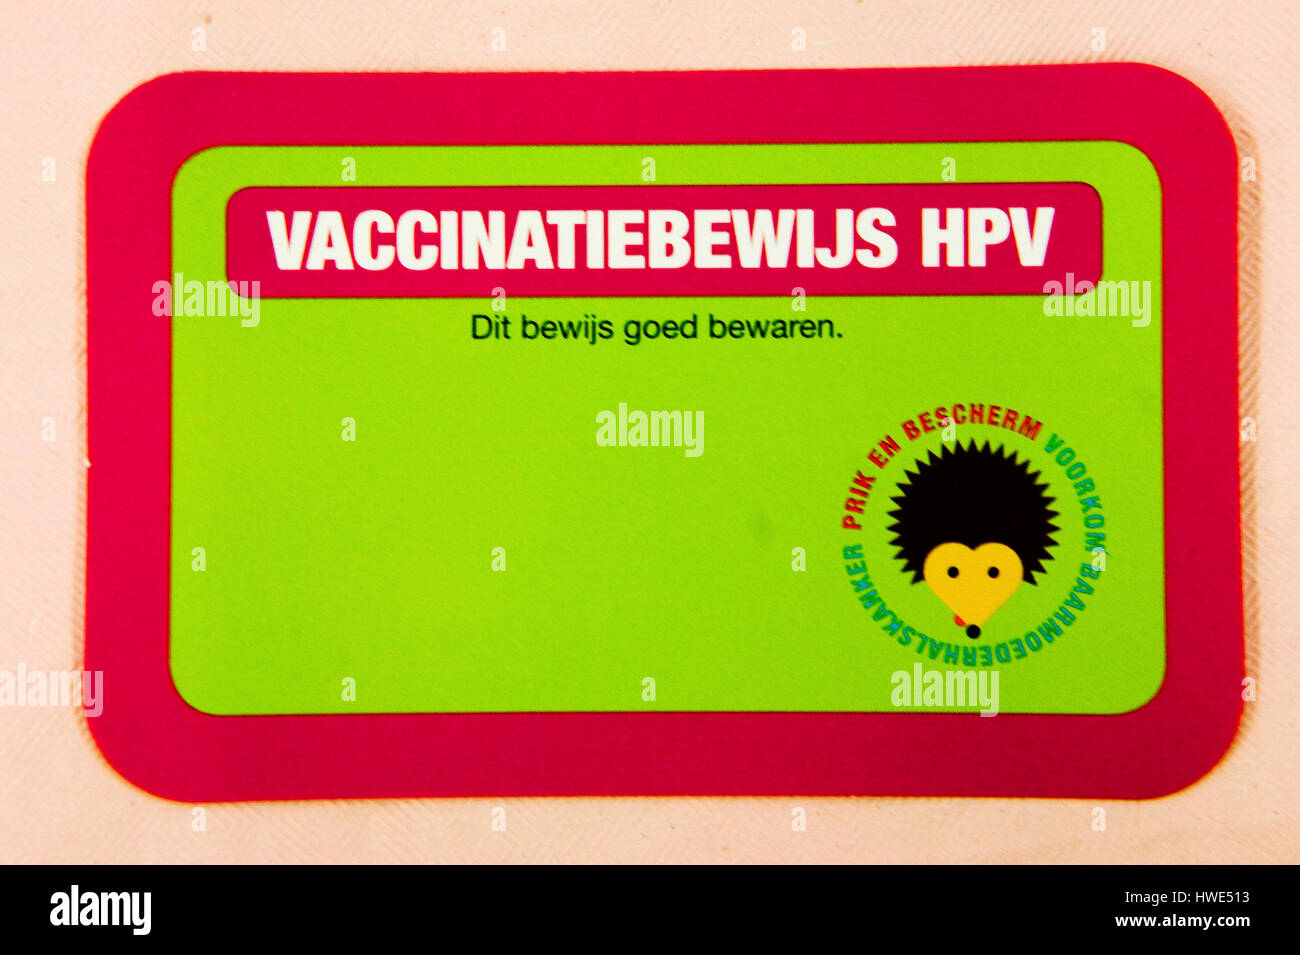 vaccination campaign against cervical cancer Stock Photo